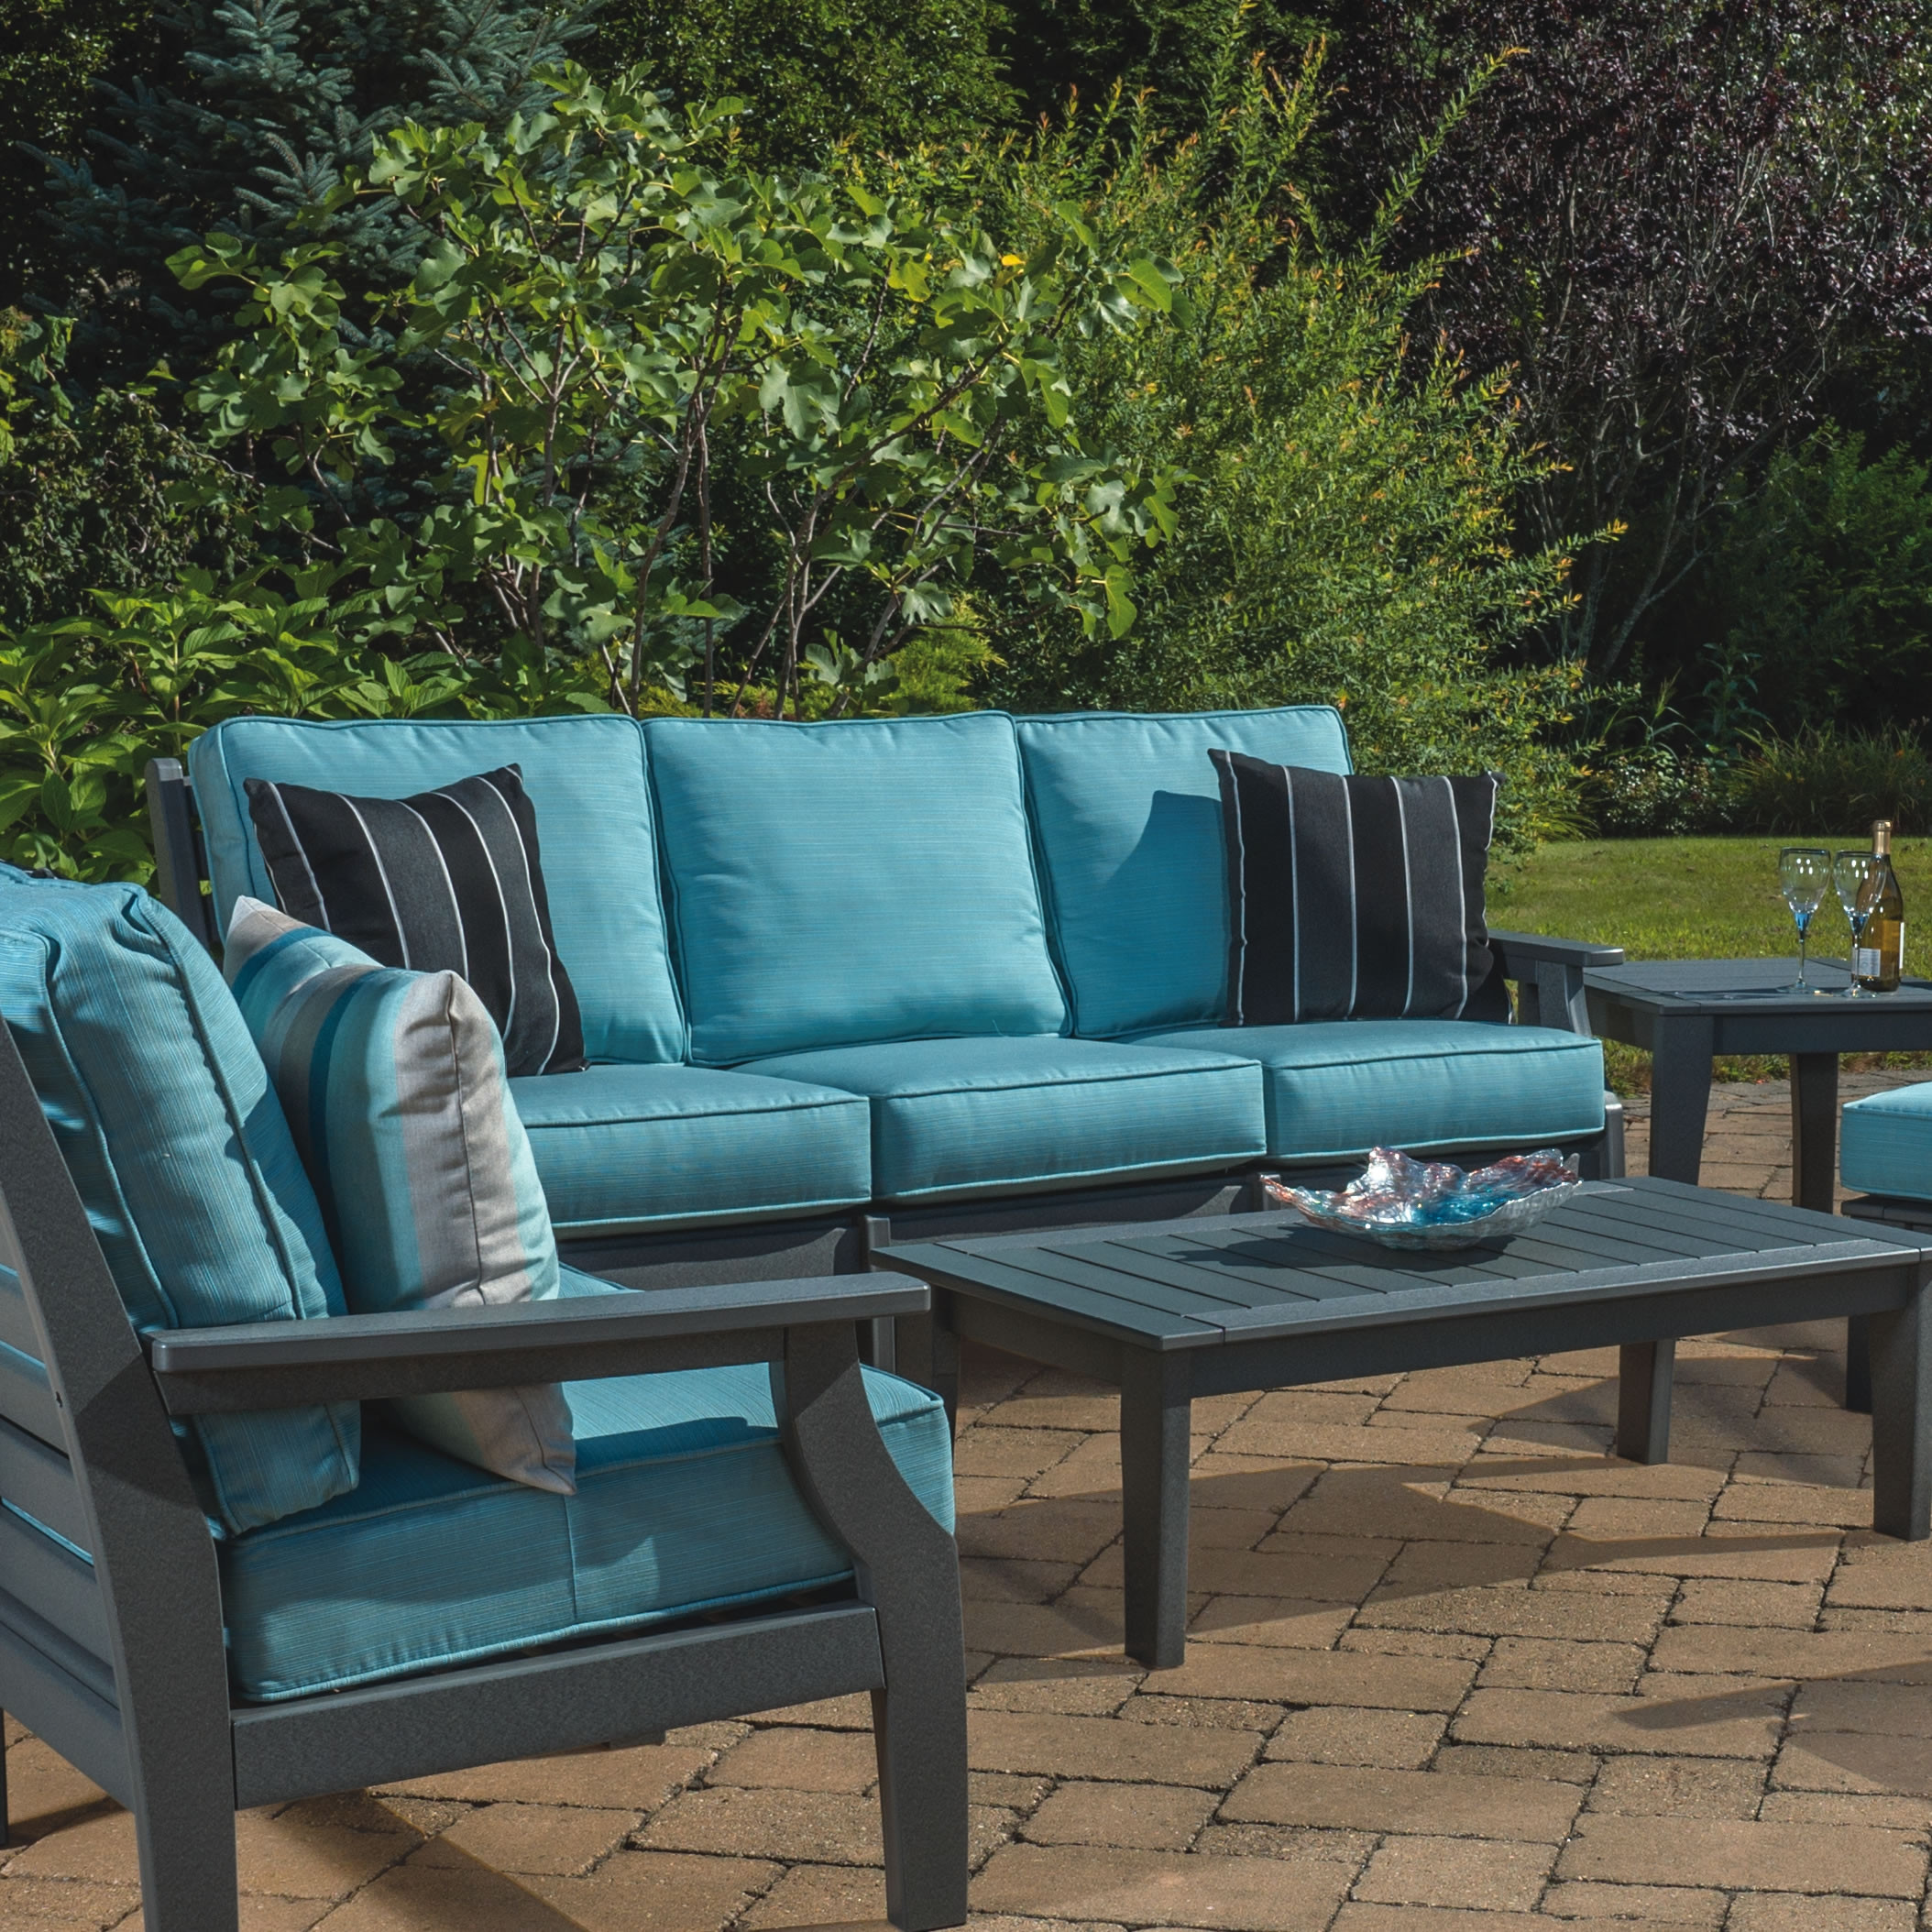 Malibu Outdoor Maywood Sofa